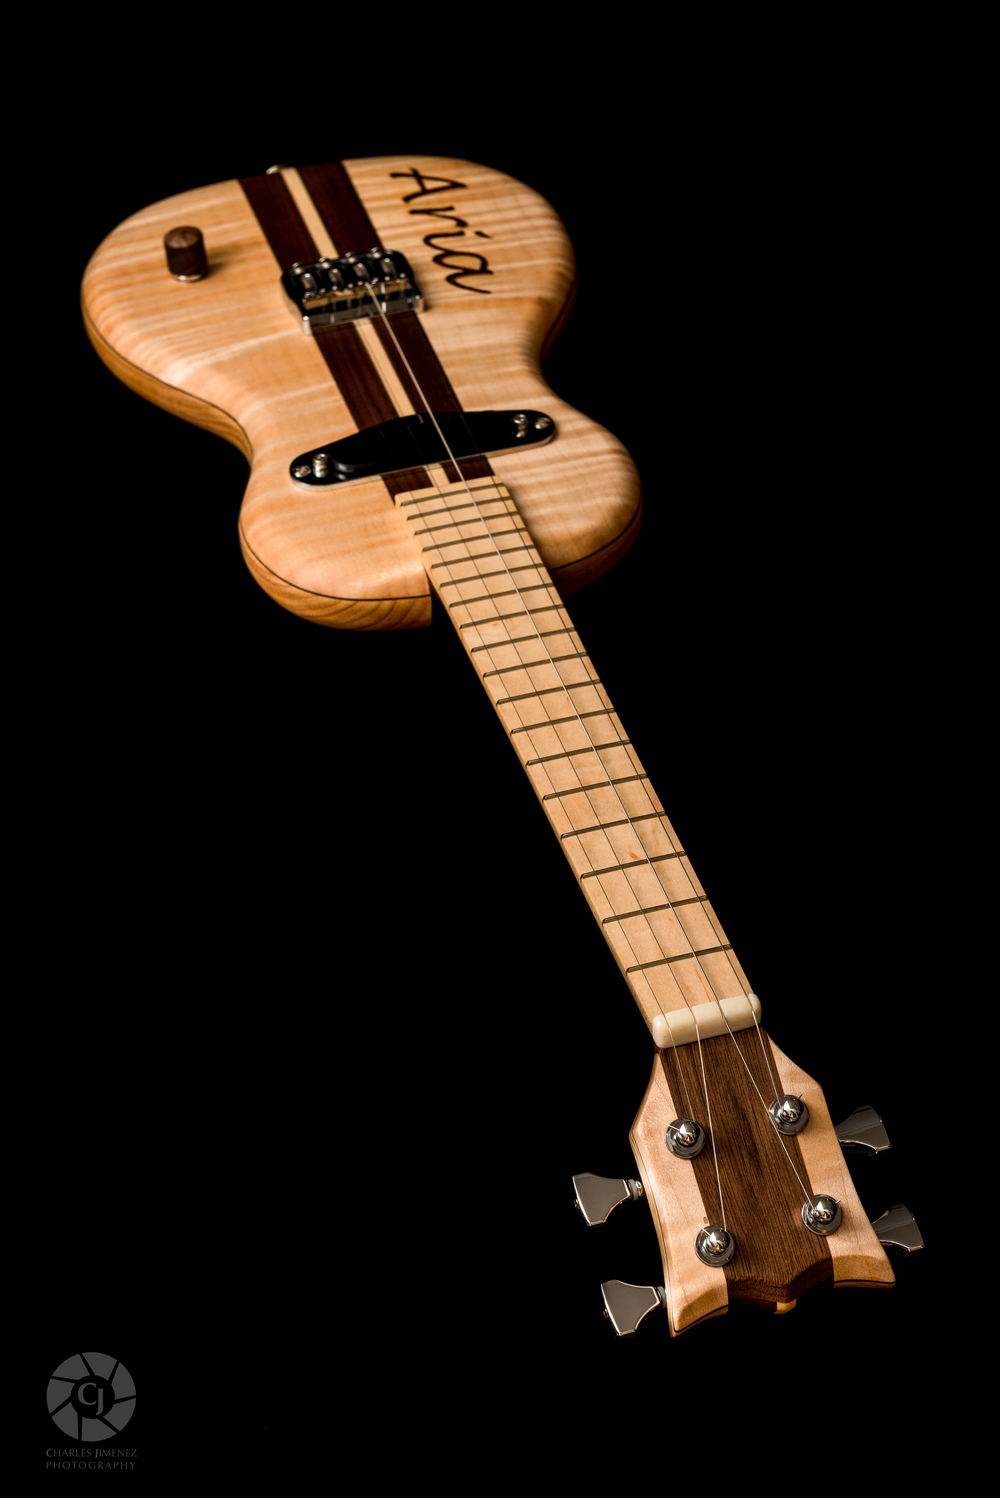 Better Mousetrap Guitars_Aria Ukulele_8-25-13_07.jpg